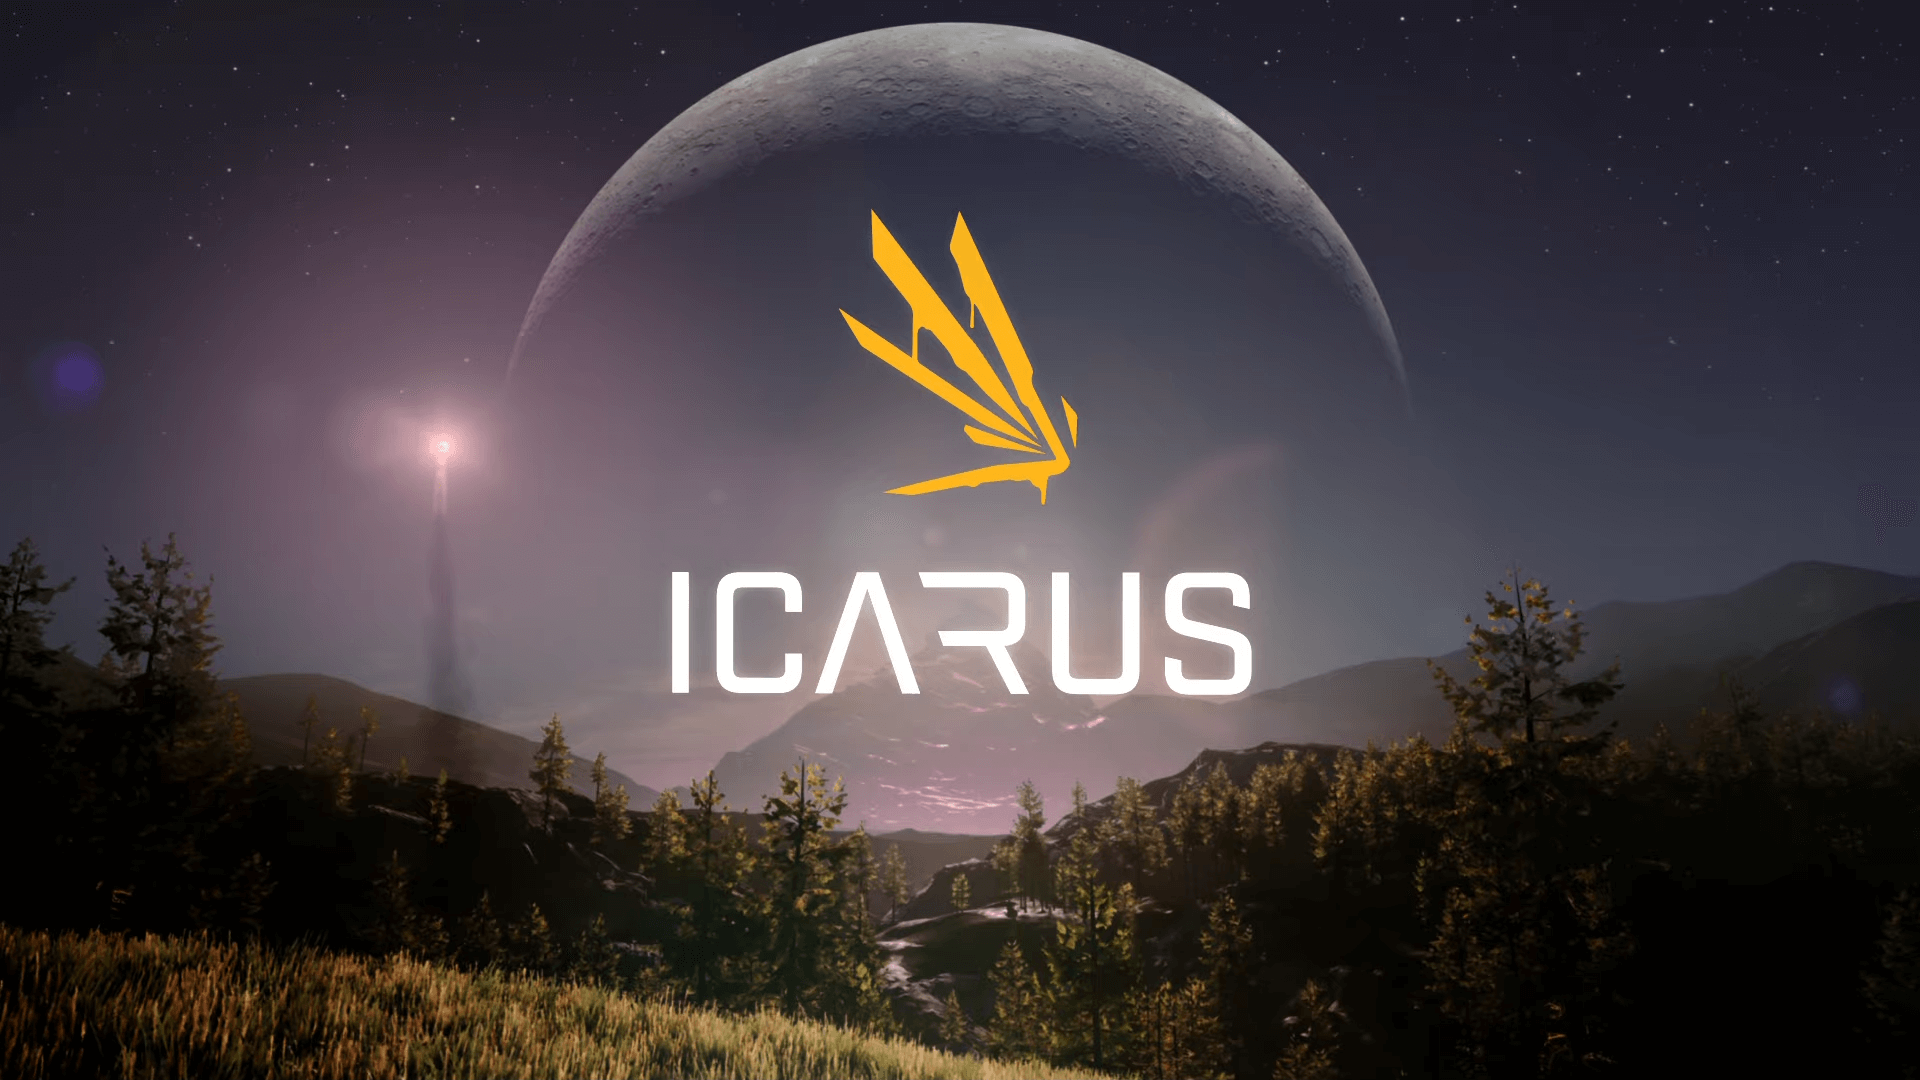 Icarus, a New Survival Game, Unveiled By DayZ Creator